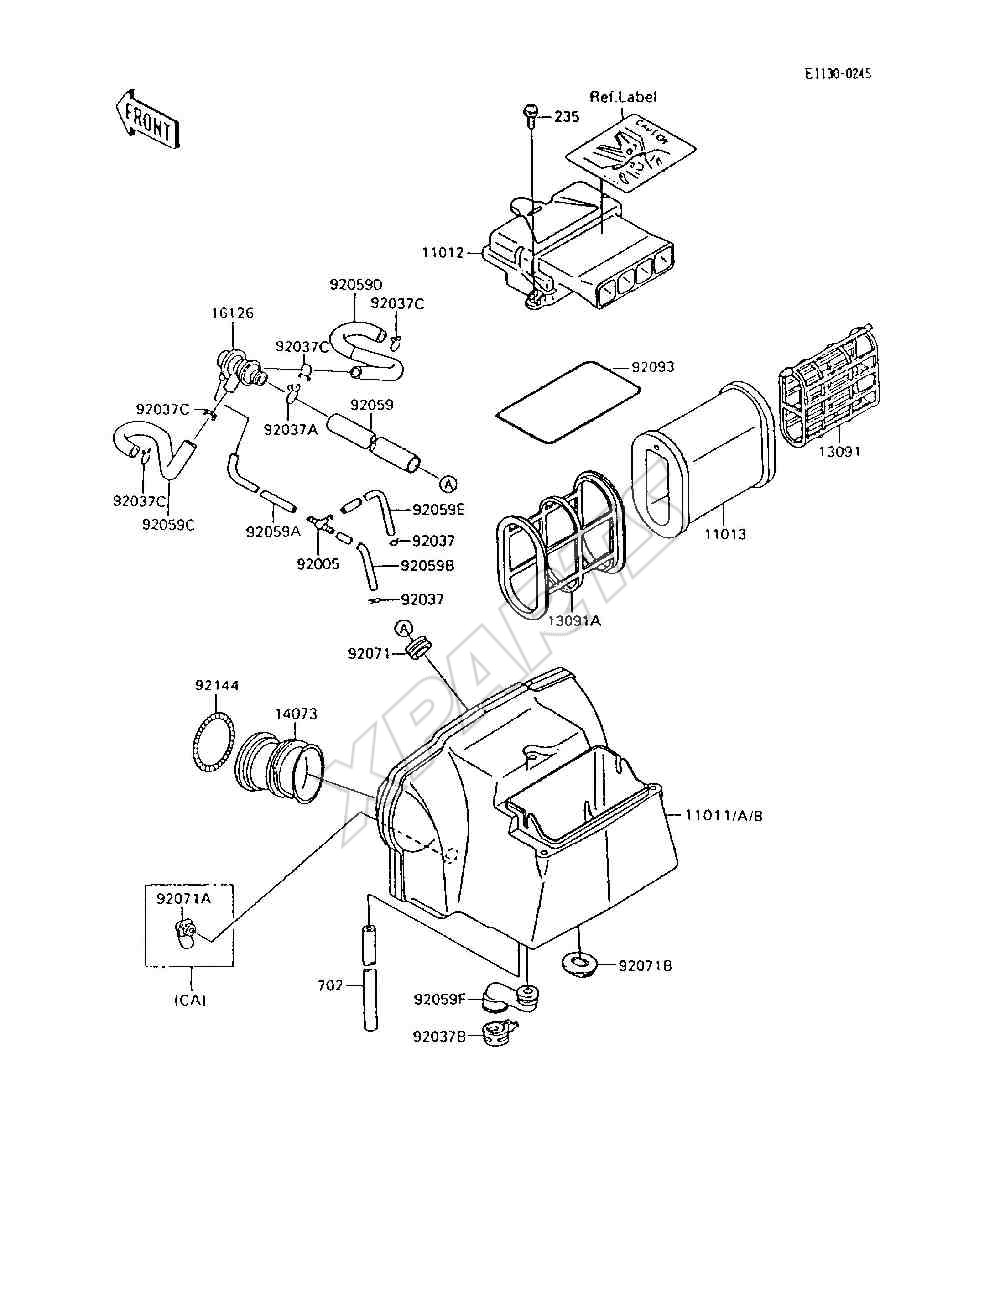 1995 Ninja 600r Zx600 C8 Engine Diagram 1985 900 Picture For Category Air Cleaner